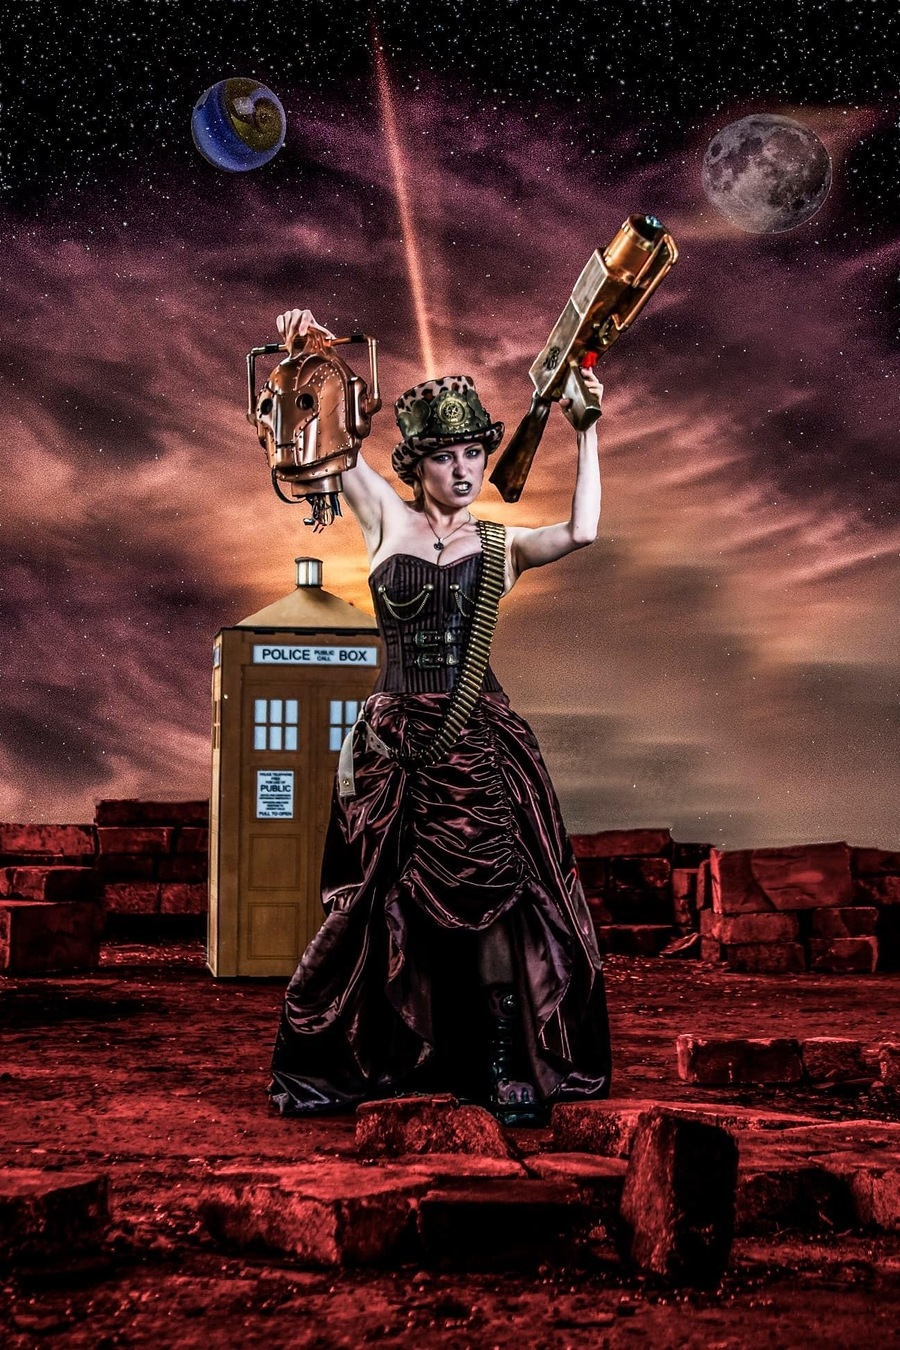 The doctor victorious / Photography by Mark Zygo, Post processing by Mark Zygo / Uploaded 17th September 2020 @ 10:07 PM